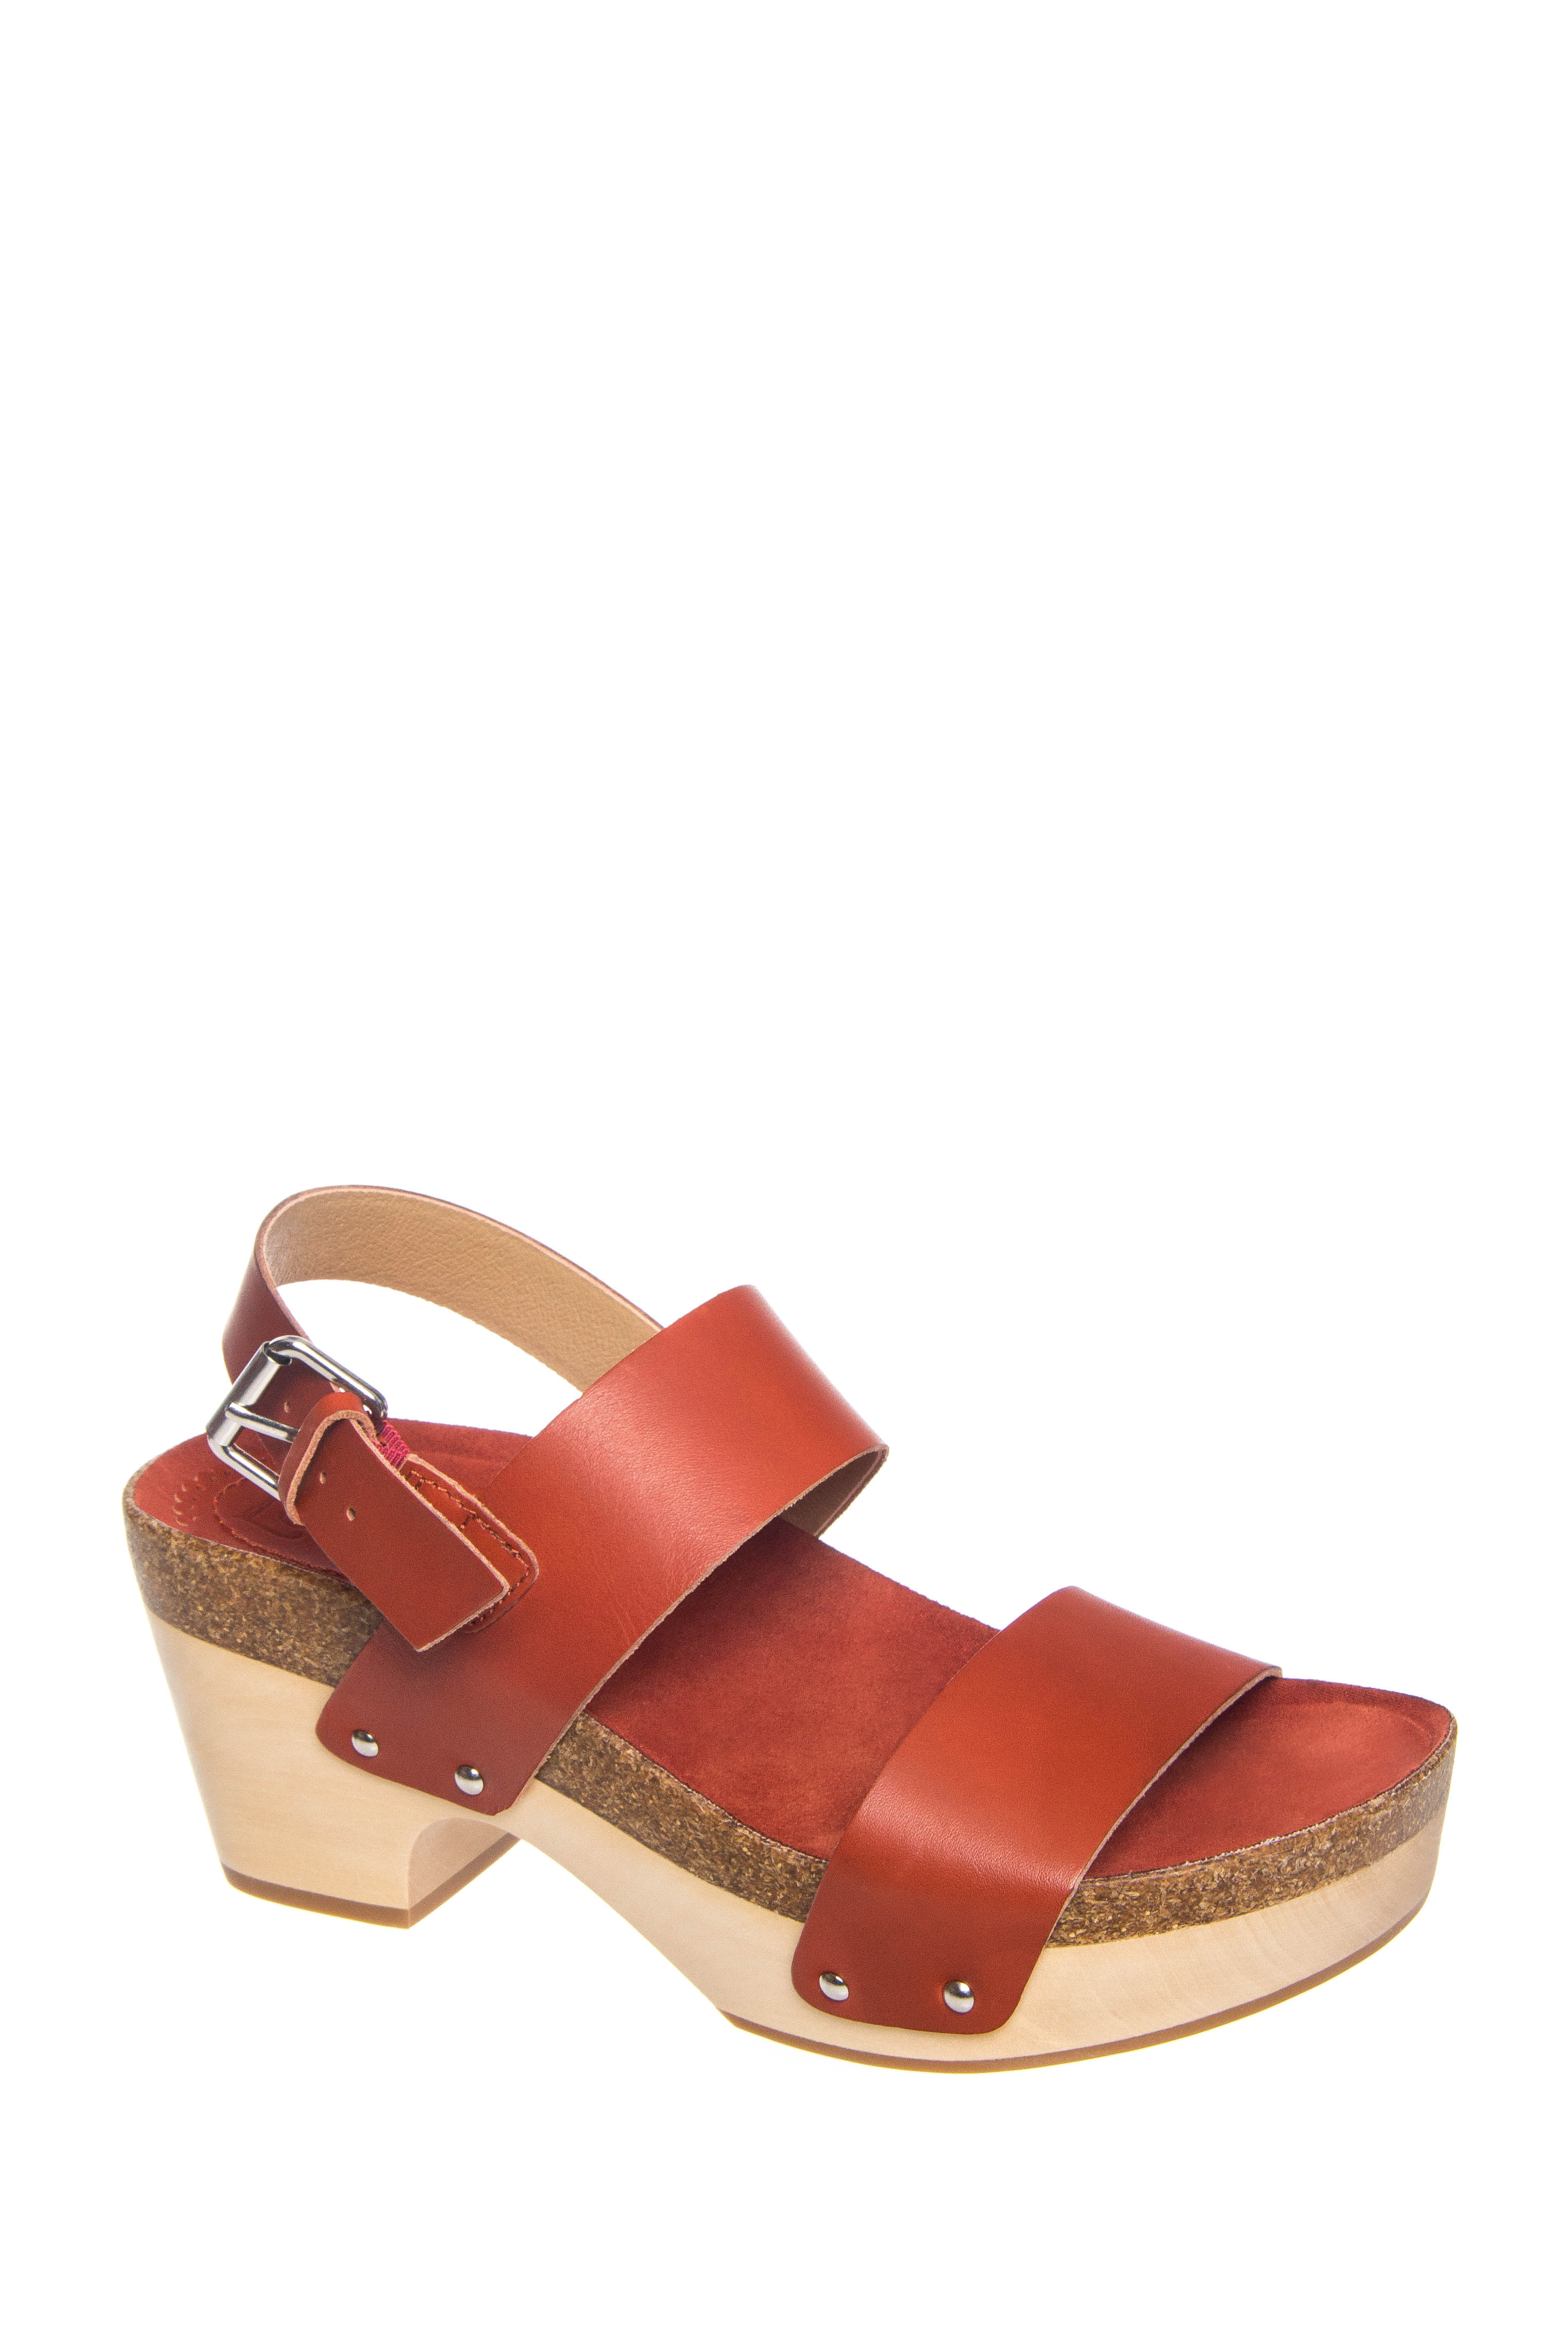 Latigo Larry Mid Heel Sandals